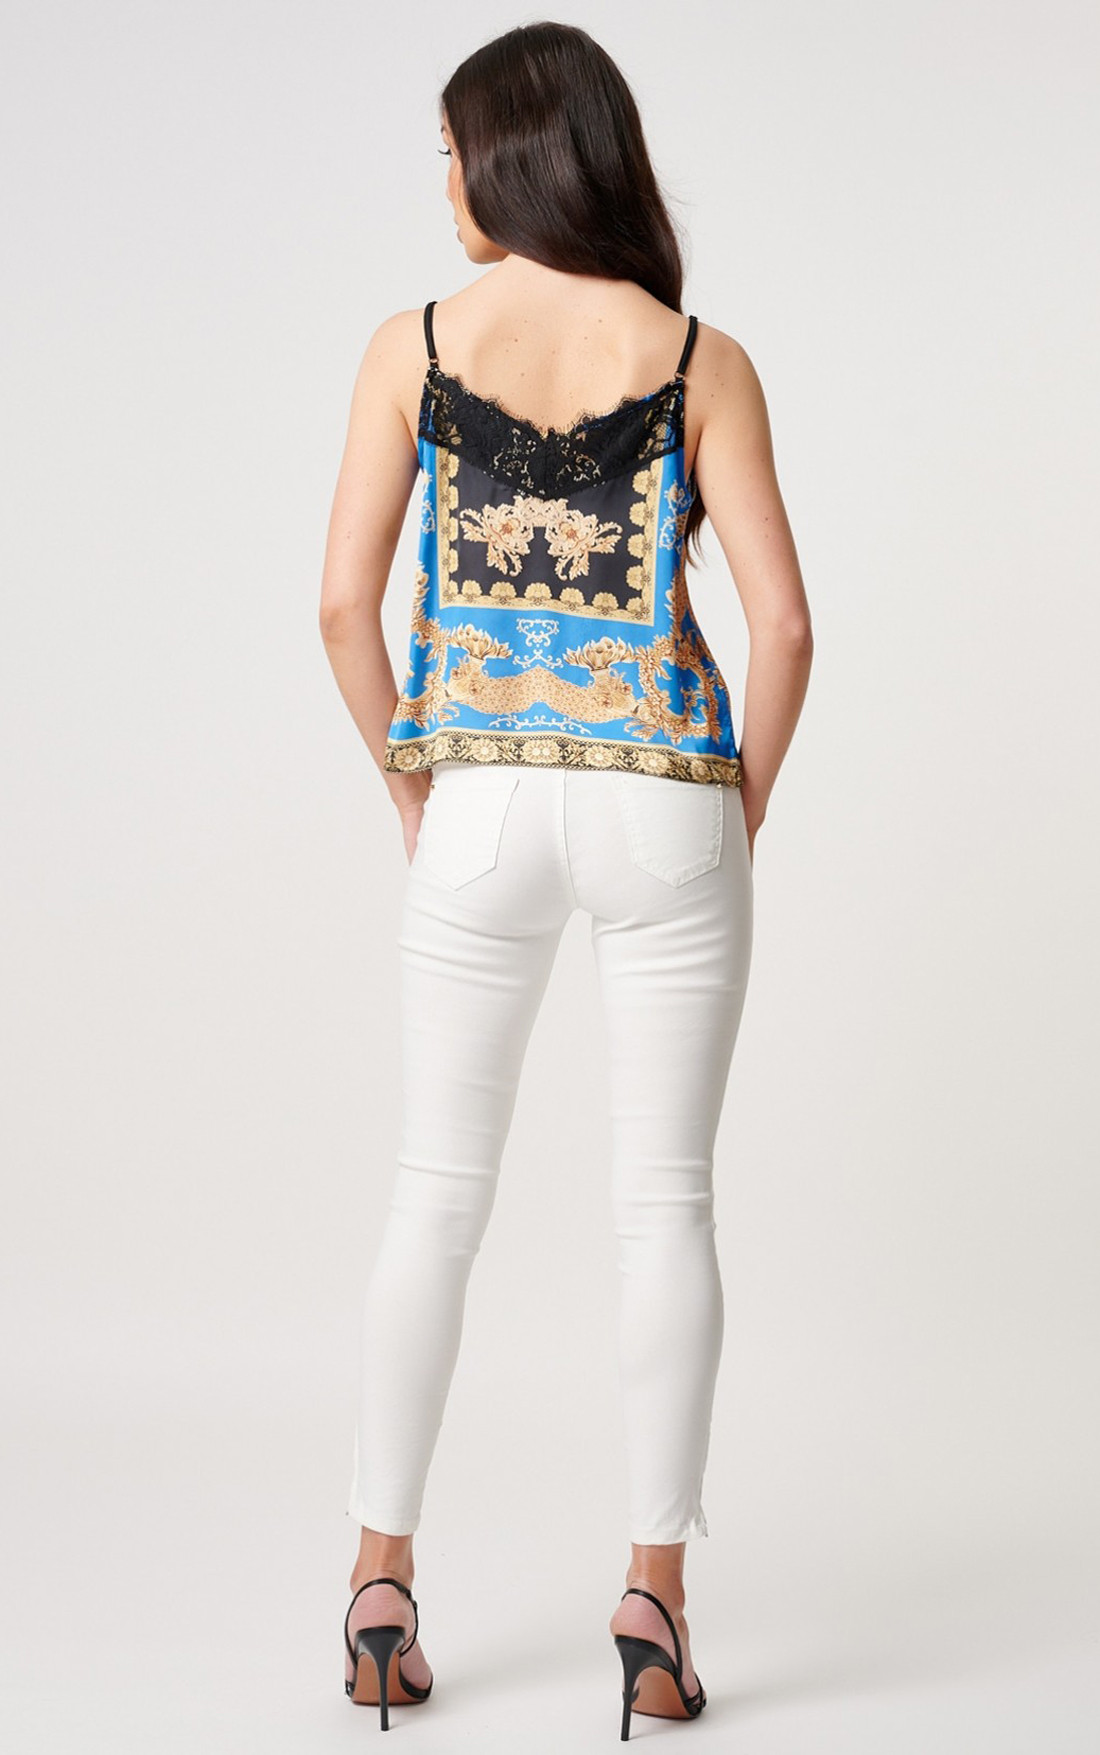 Forever Unique - Marine Baroque Print Camisole Top With Lace Trimming (MN209724)